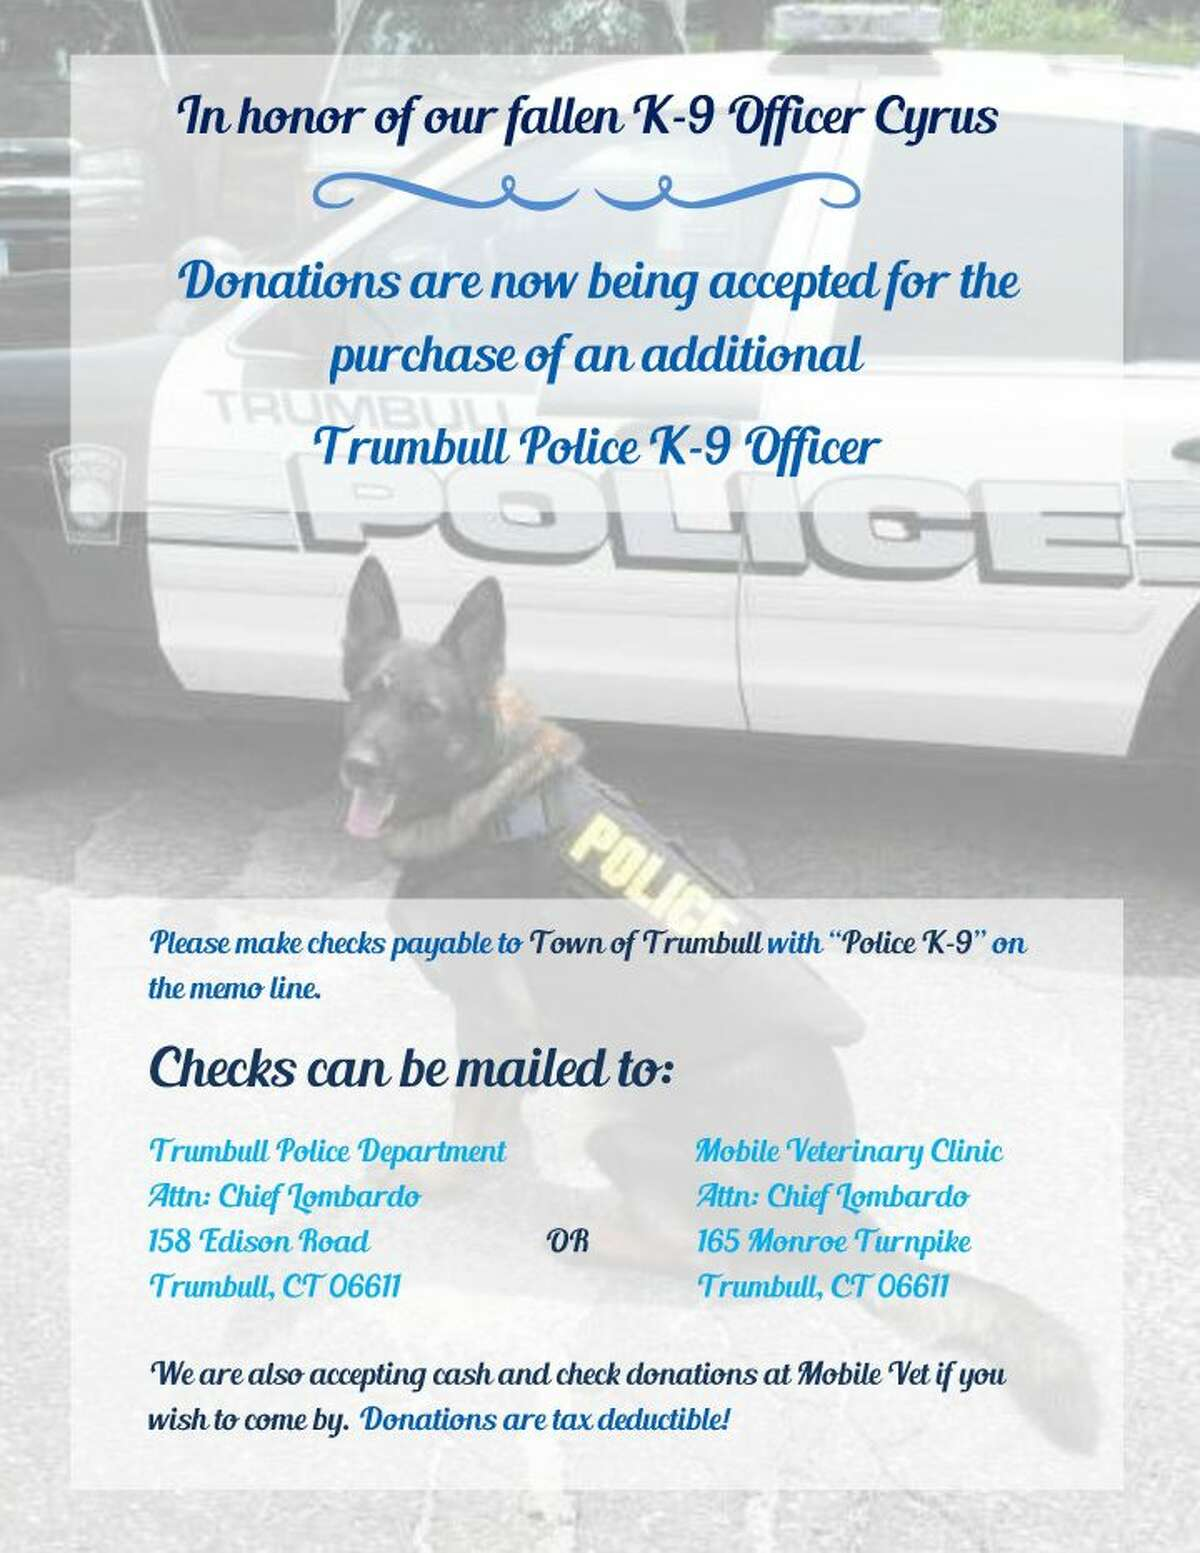 Residents can send checks to the Trumbull Police Department or the Mobile Veterinary Clinic.